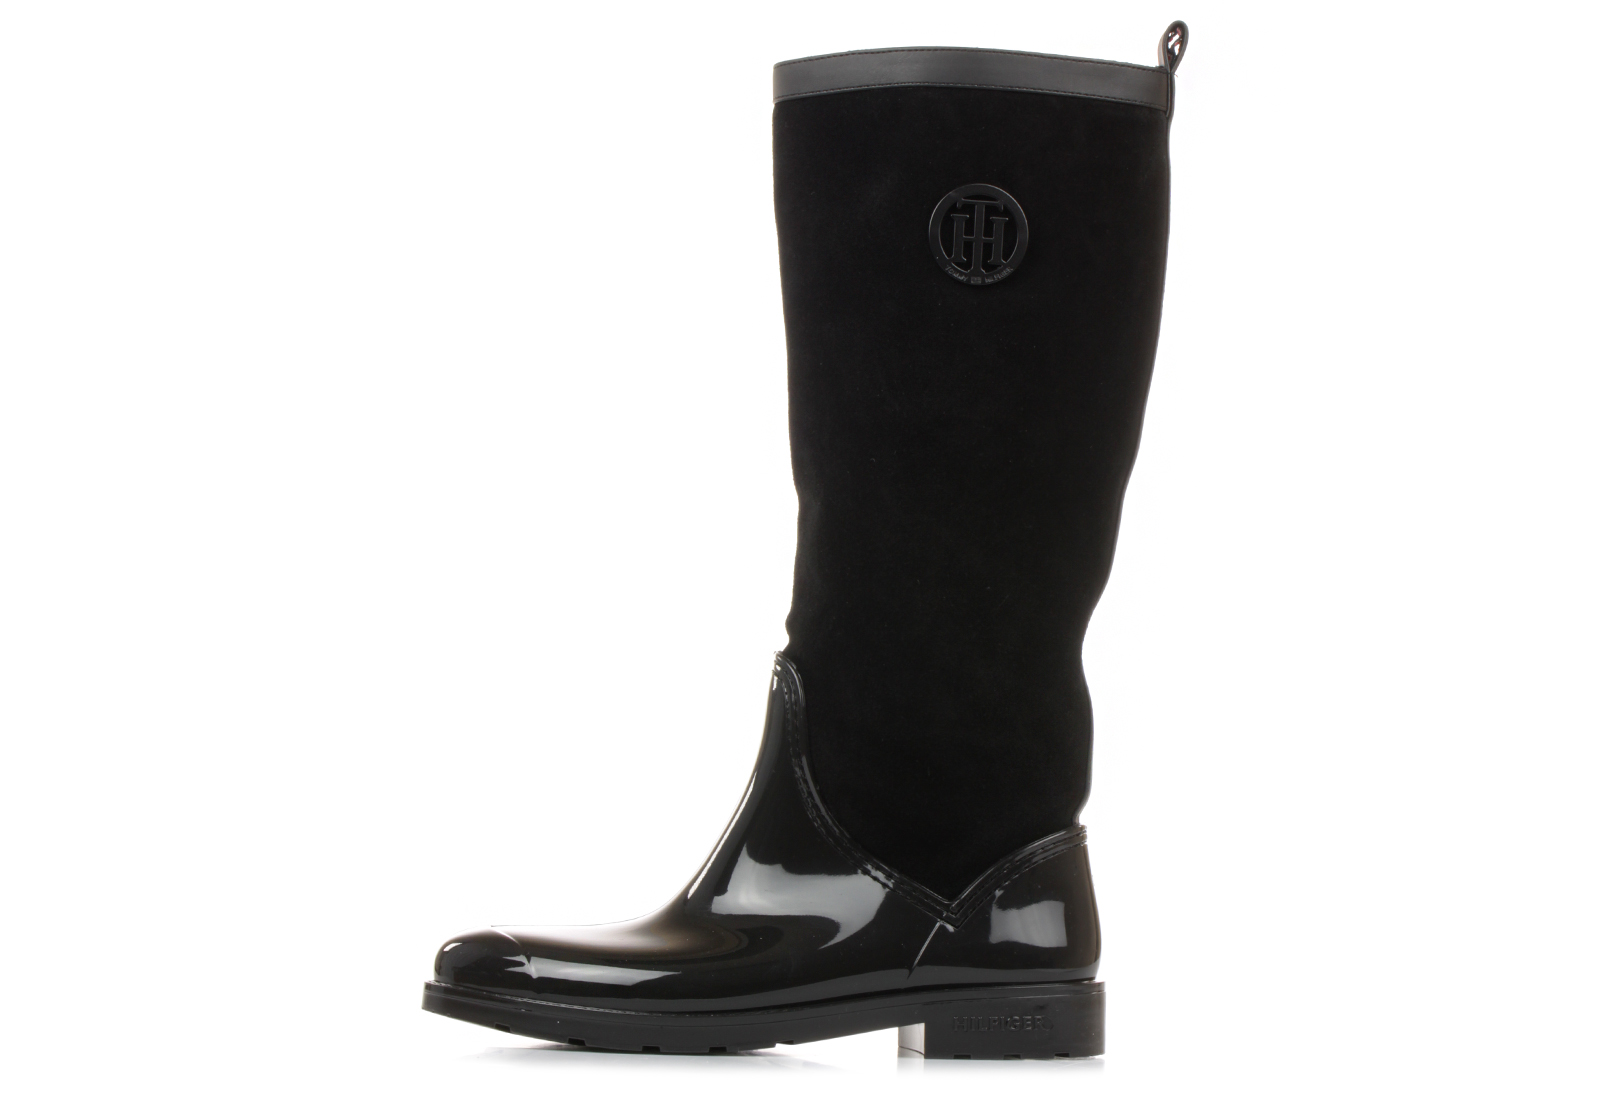 Tommy Hilfiger Boots - Oxford 9rw - 17F-1972-990 - Online shop for sneakers, shoes and boots